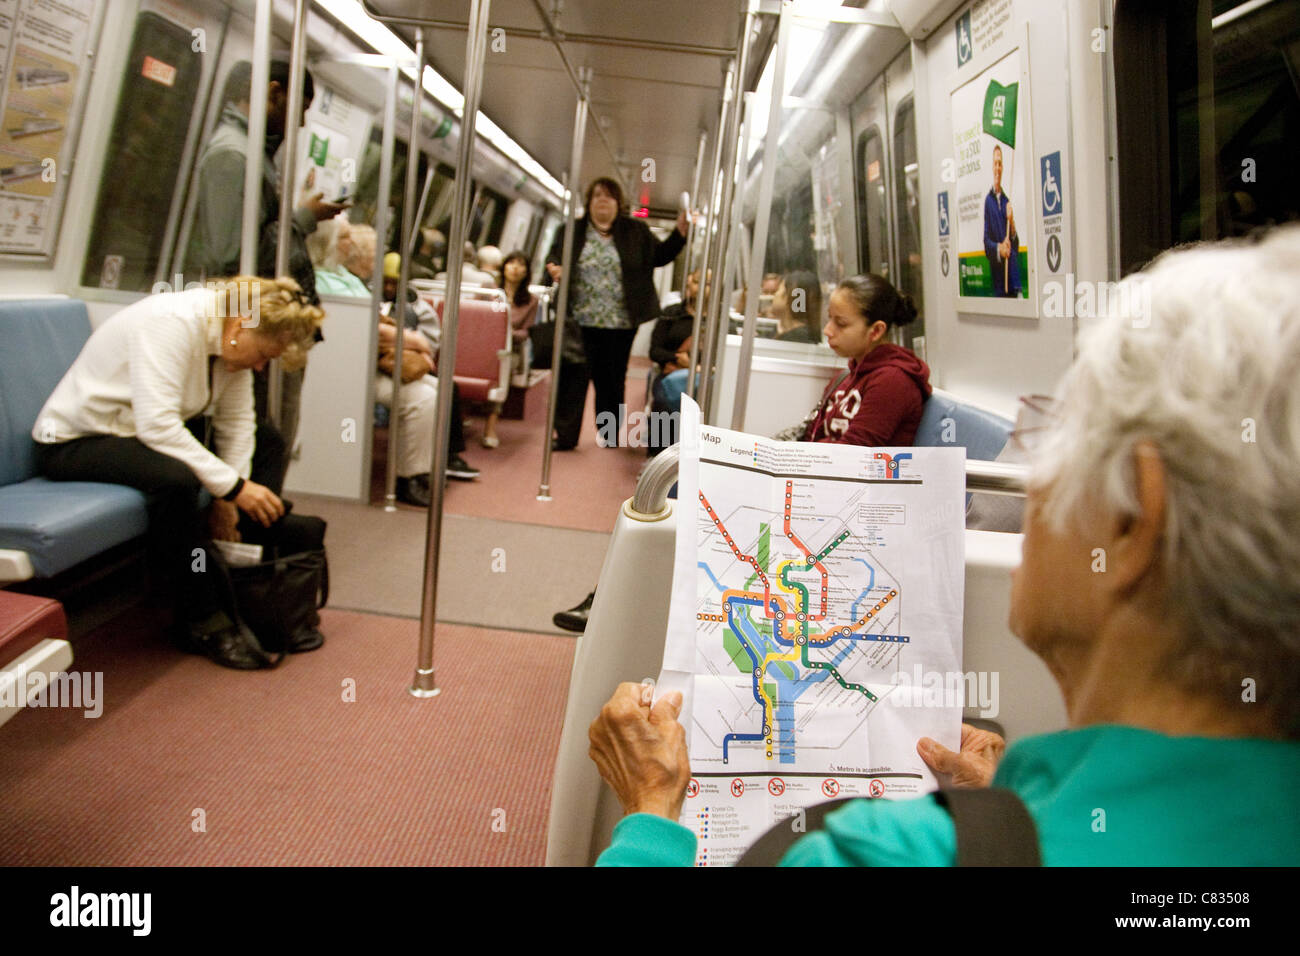 Metro Train Dc Map.An Elderly Lady Reading A Map Of The Metro Subway Rail System Stock